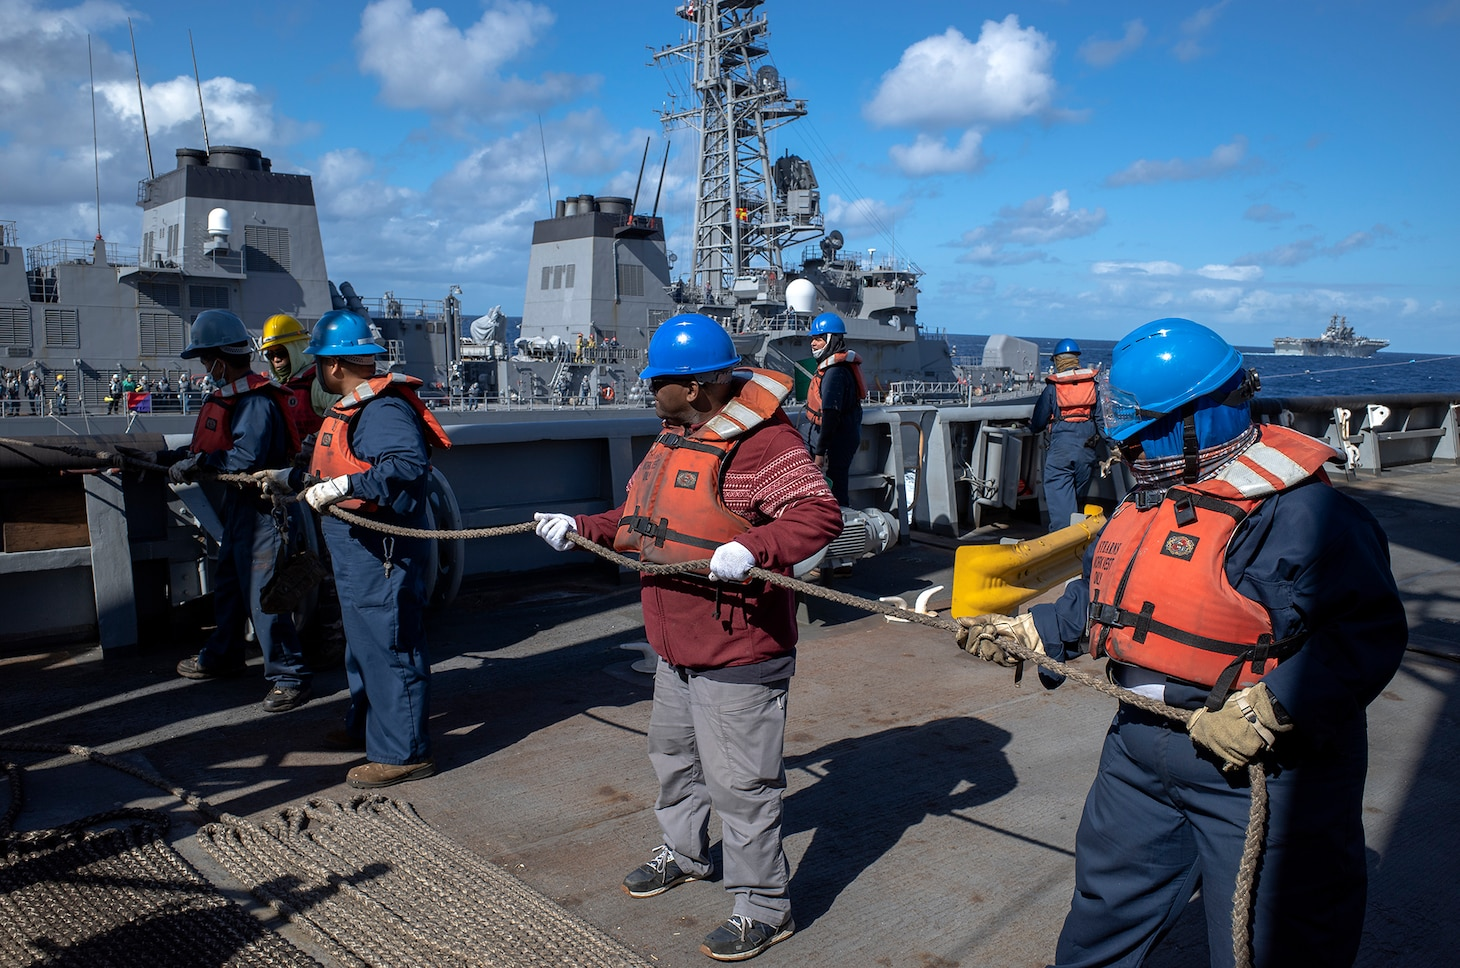 210722-N-N1109-007 CORAL SEA (July 25, 2021) - USNS Rappahannock (T-AO 204) crew members prepare to resupply JS Makinami (DD 112) during Exercise Talisman Sabre 21. This is the ninth iteration of Talisman Sabre, a large-scale, bilateral military exercise between Australia and the United States involving approximately 17,000 participants from seven nations. The month-long, multi-domain exercise consists of a series of training events that reinforce the strong U.S.-Australian alliance and demonstrate the U.S. military's unwavering commitment to a free and open Indo-Pacific. (Photo by Third Officer Brandon Feinberg)